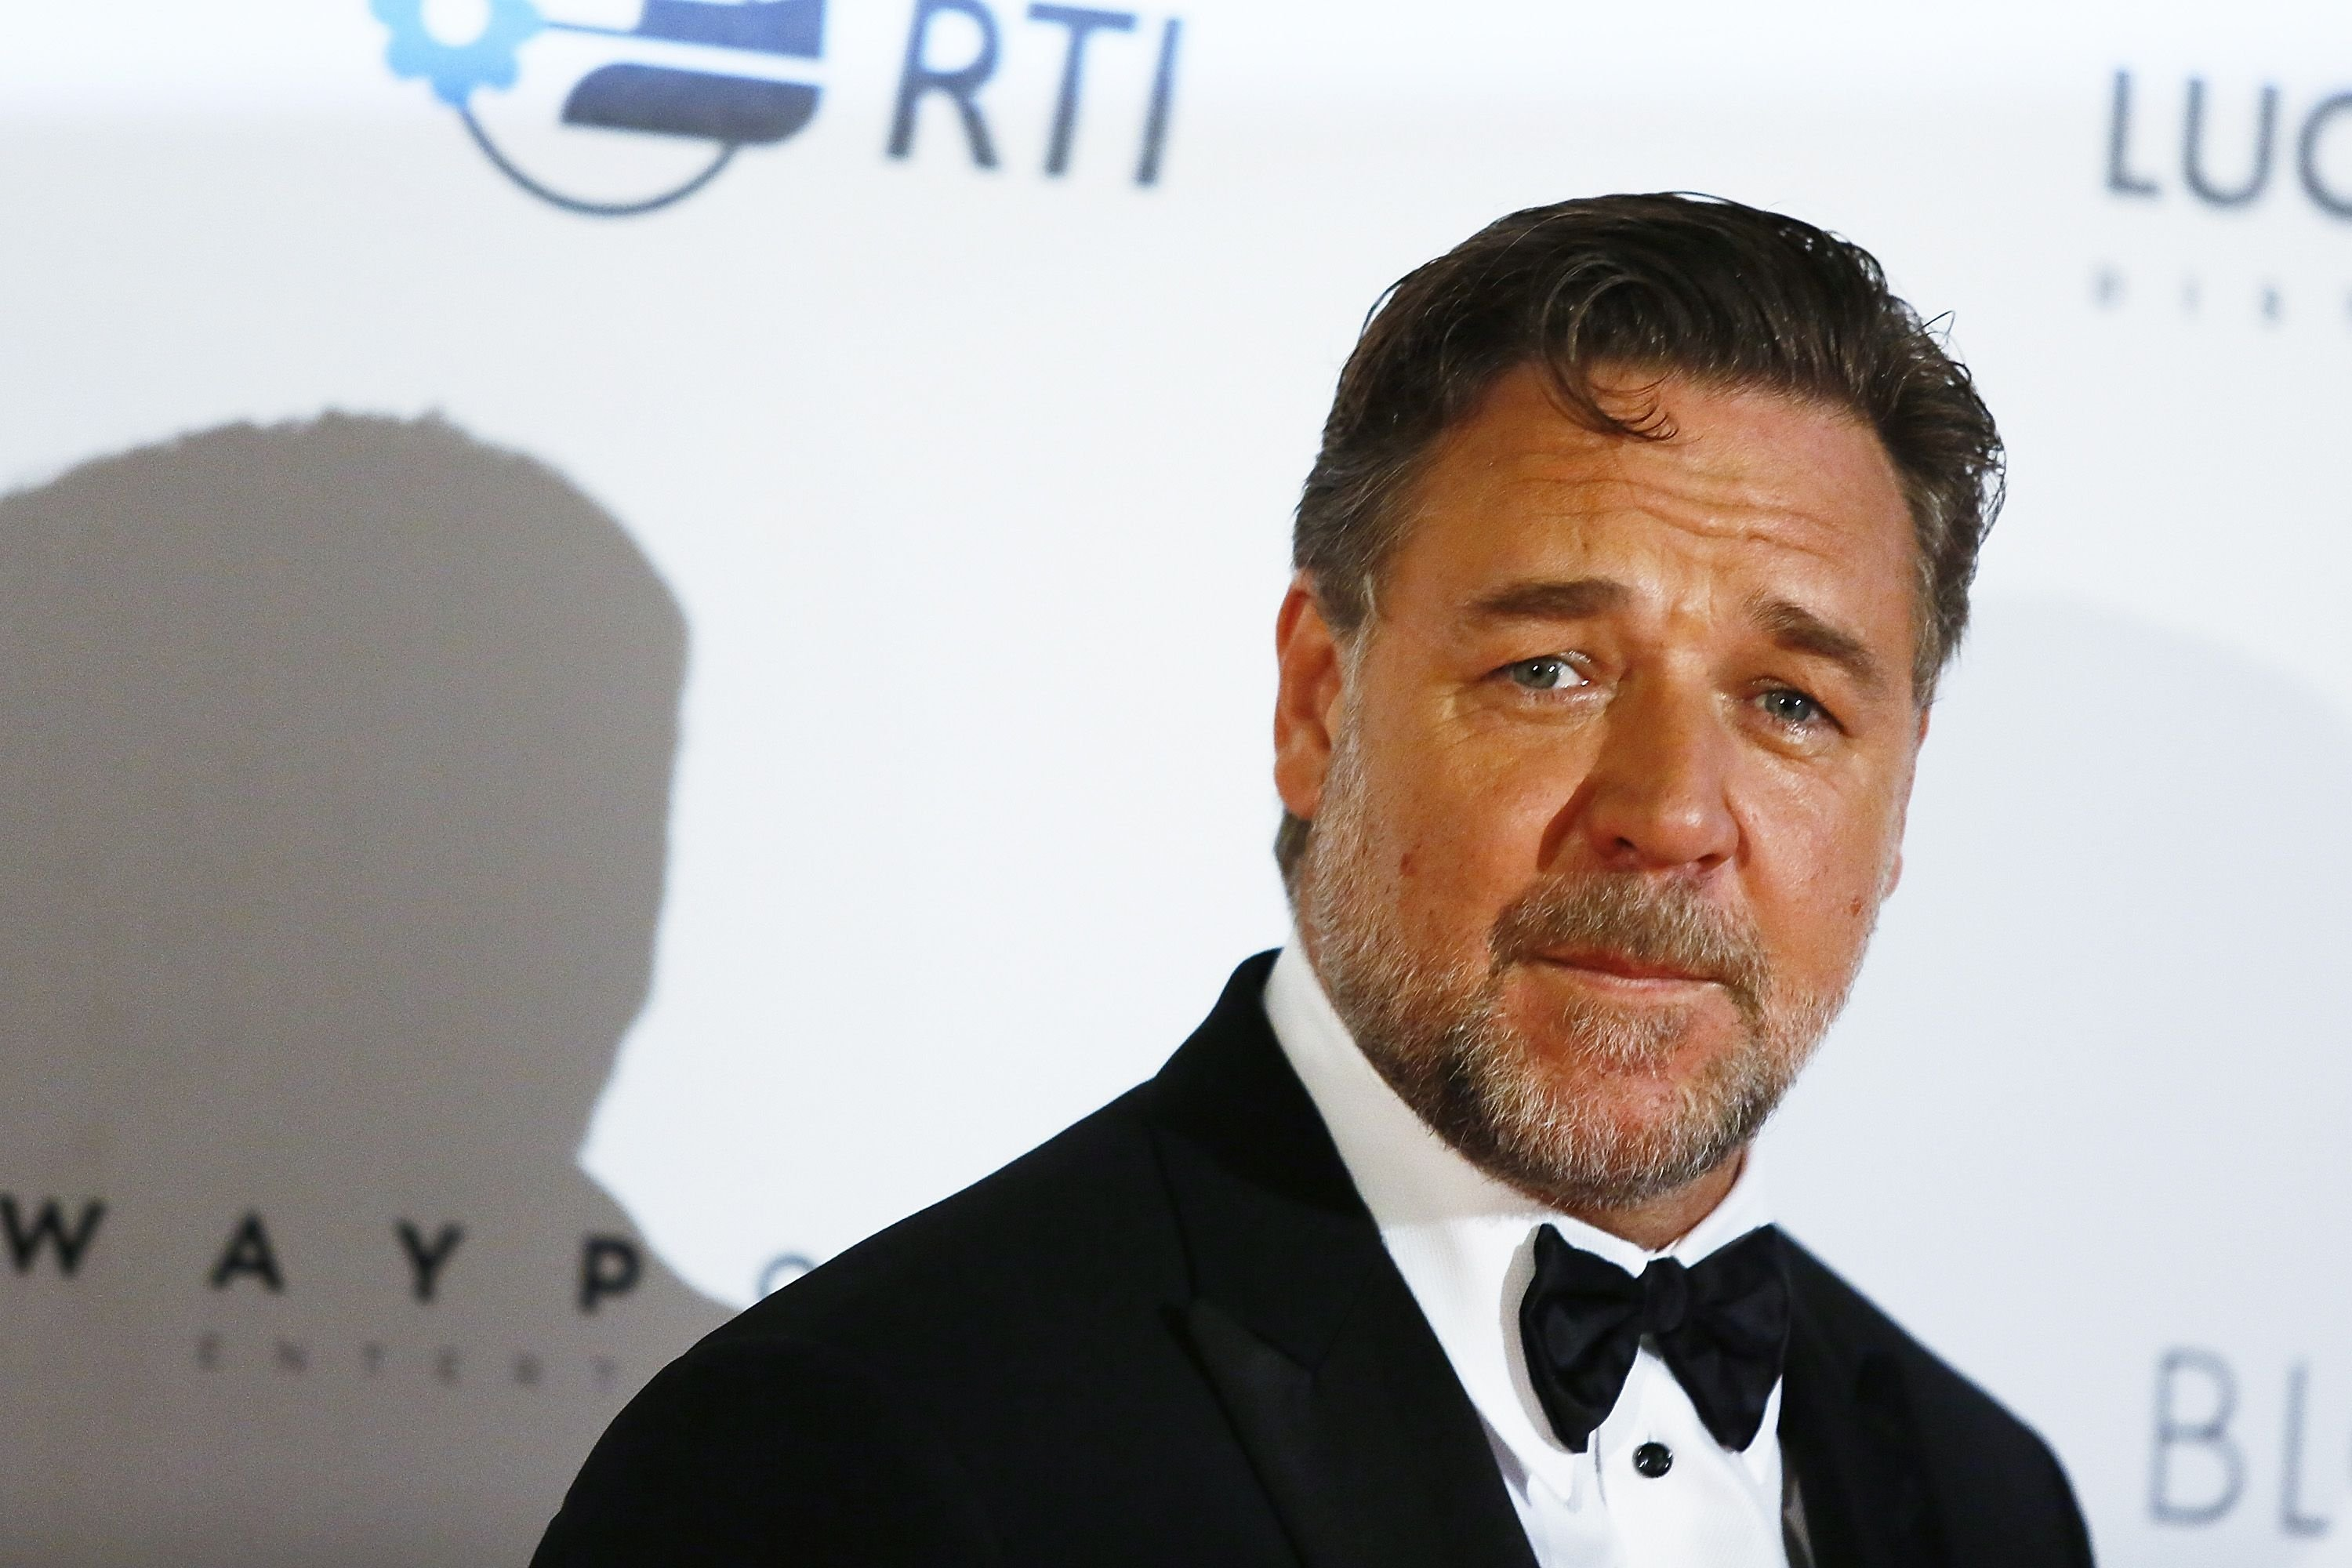 Russell Crowe attends the 'The Nice Guys' premiere at The Space Moderno. | Source: Getty Images